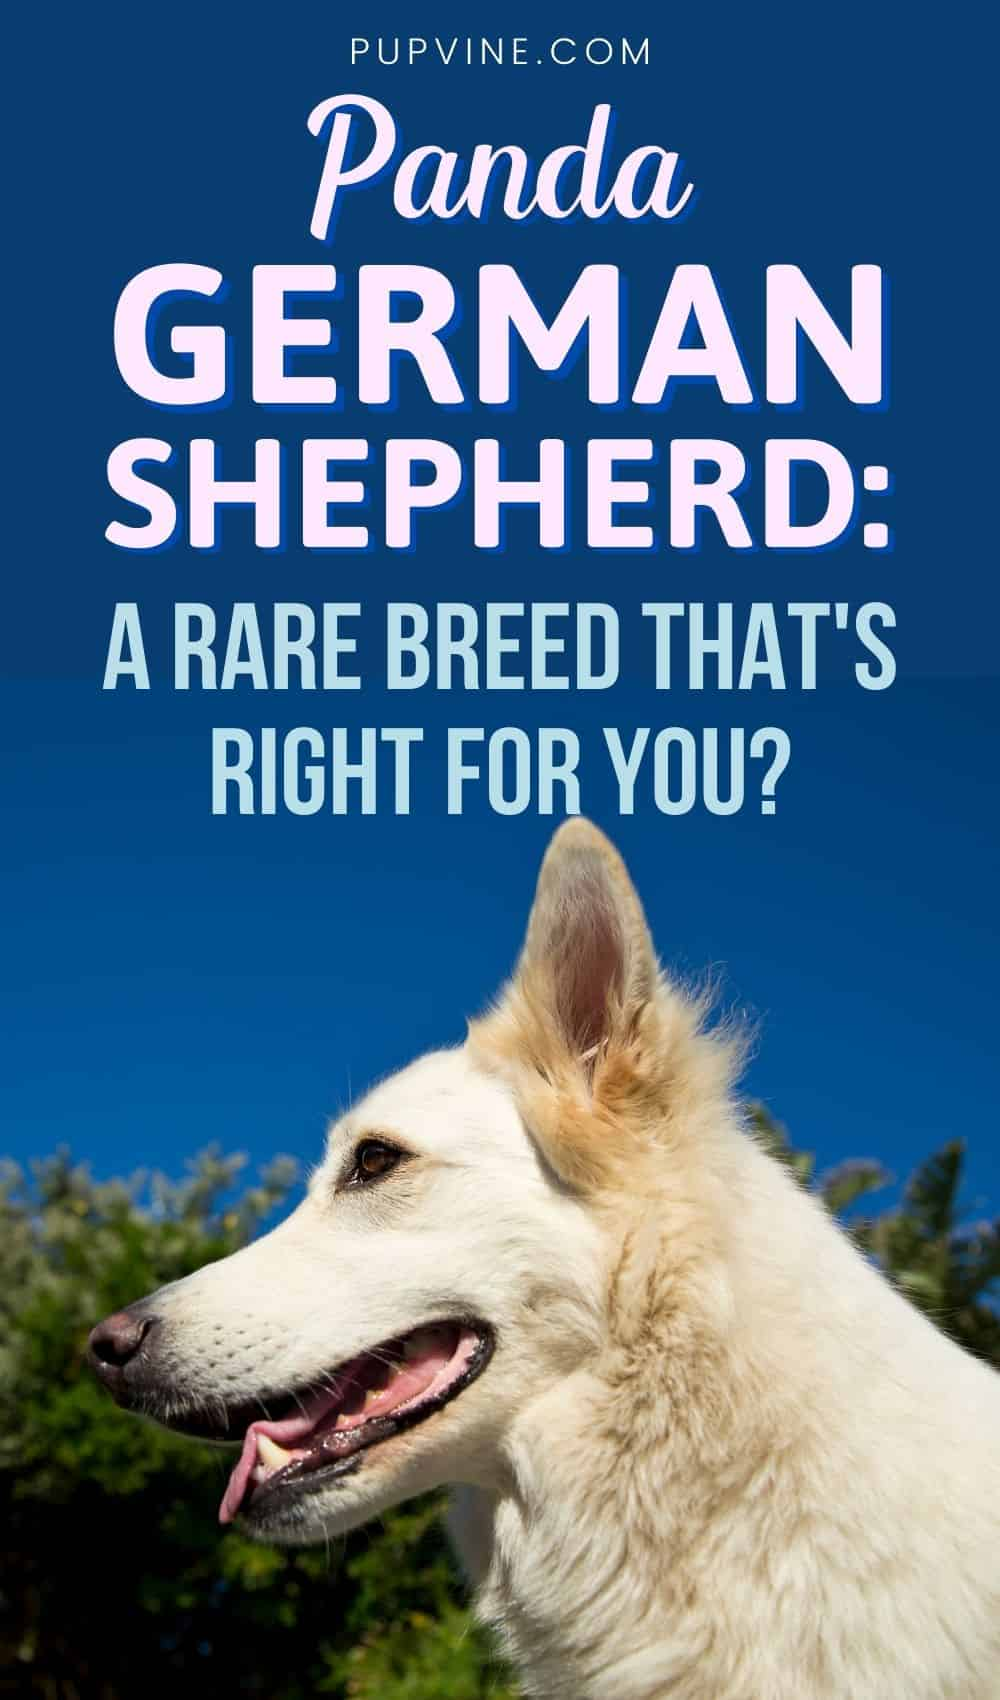 Panda German Shepherd A Rare Breed That's Right For You